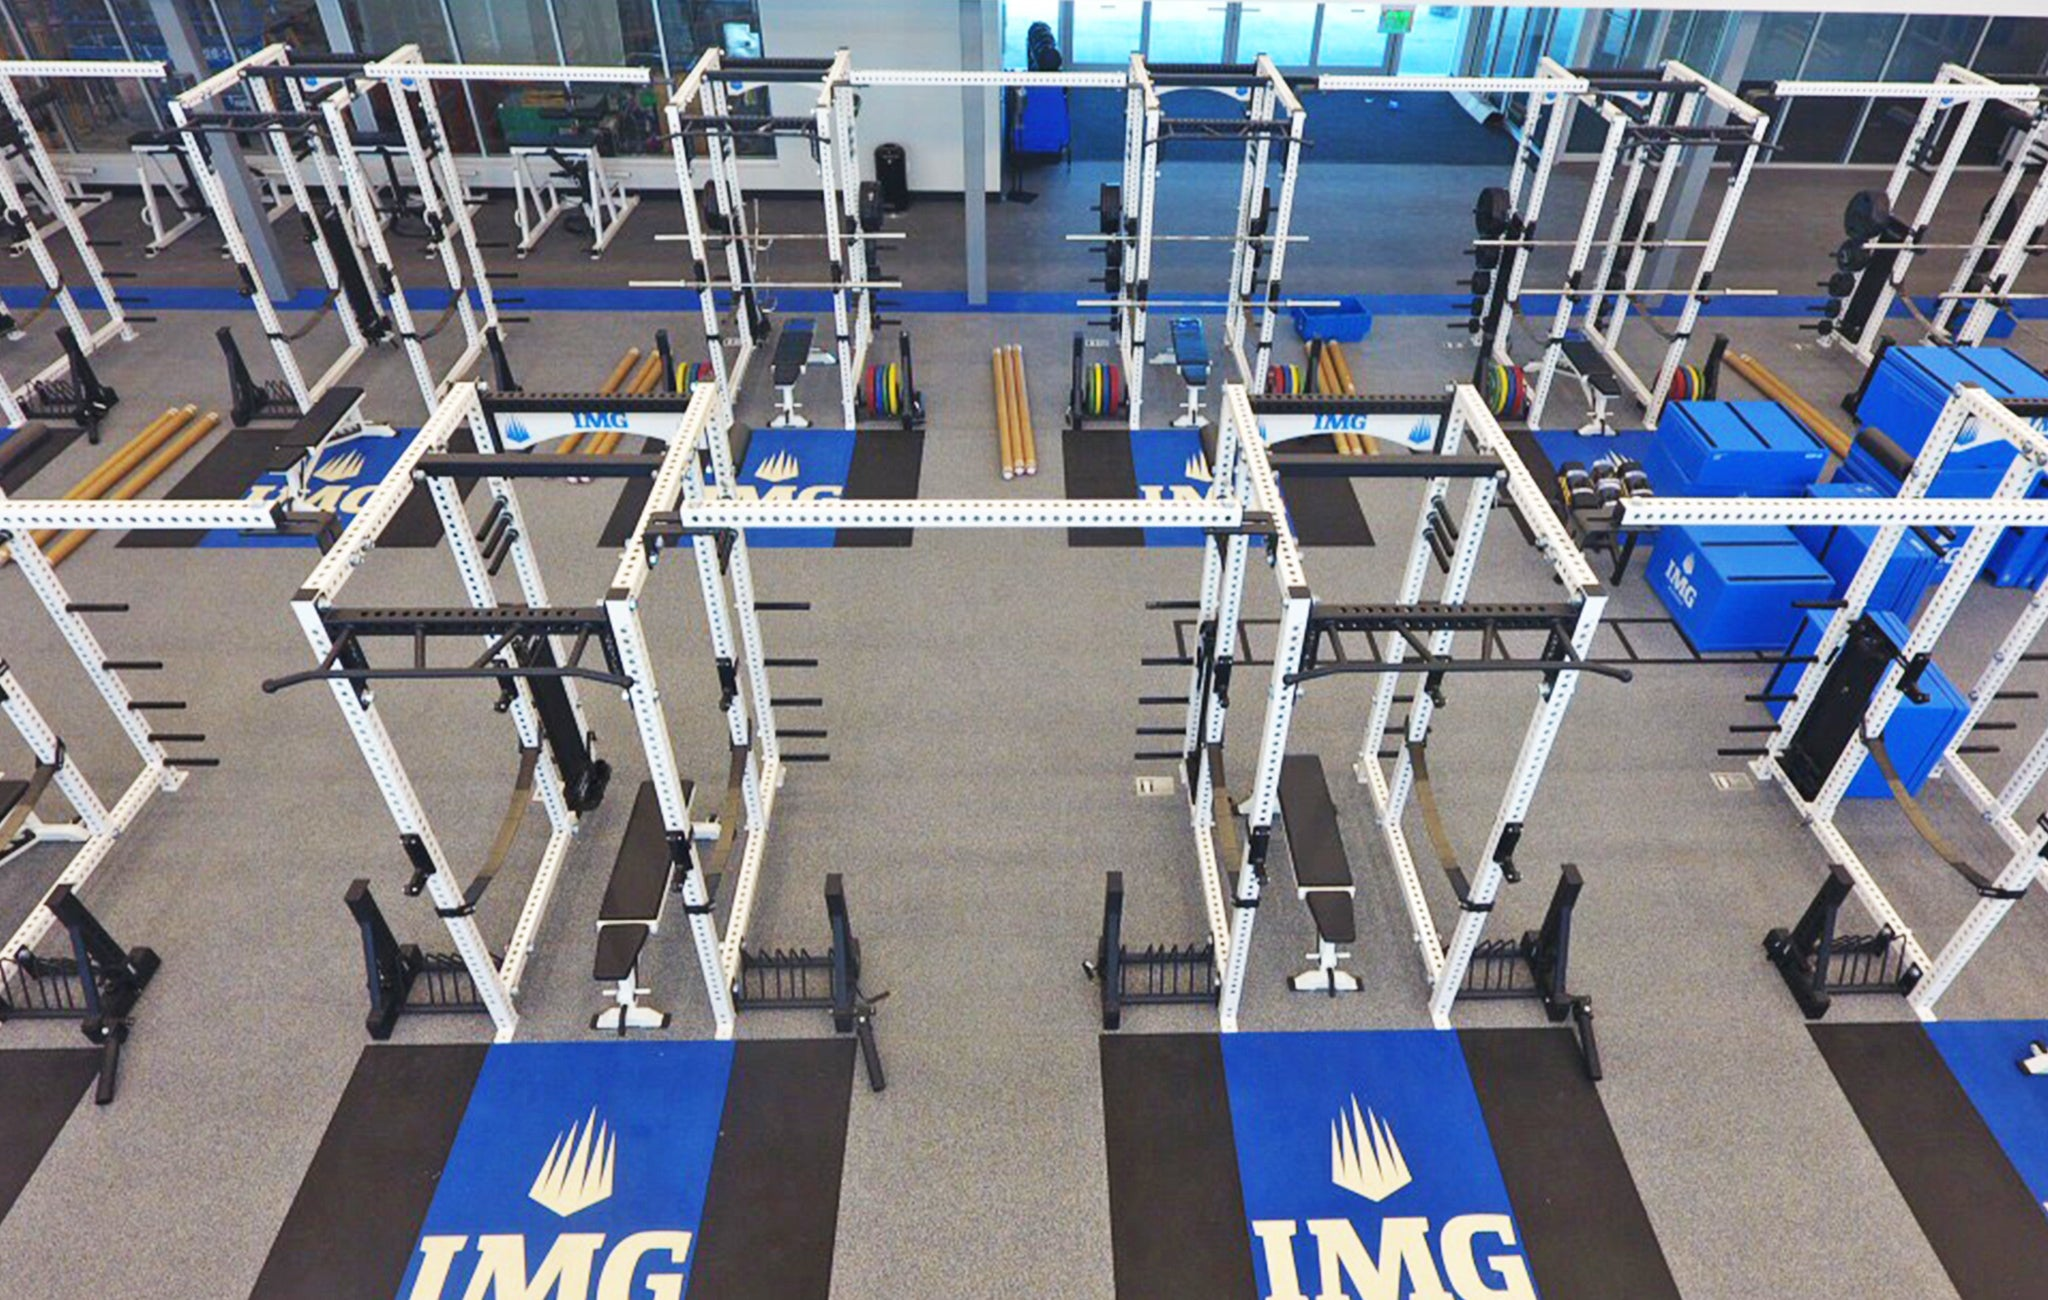 IMG Academy strength training facility